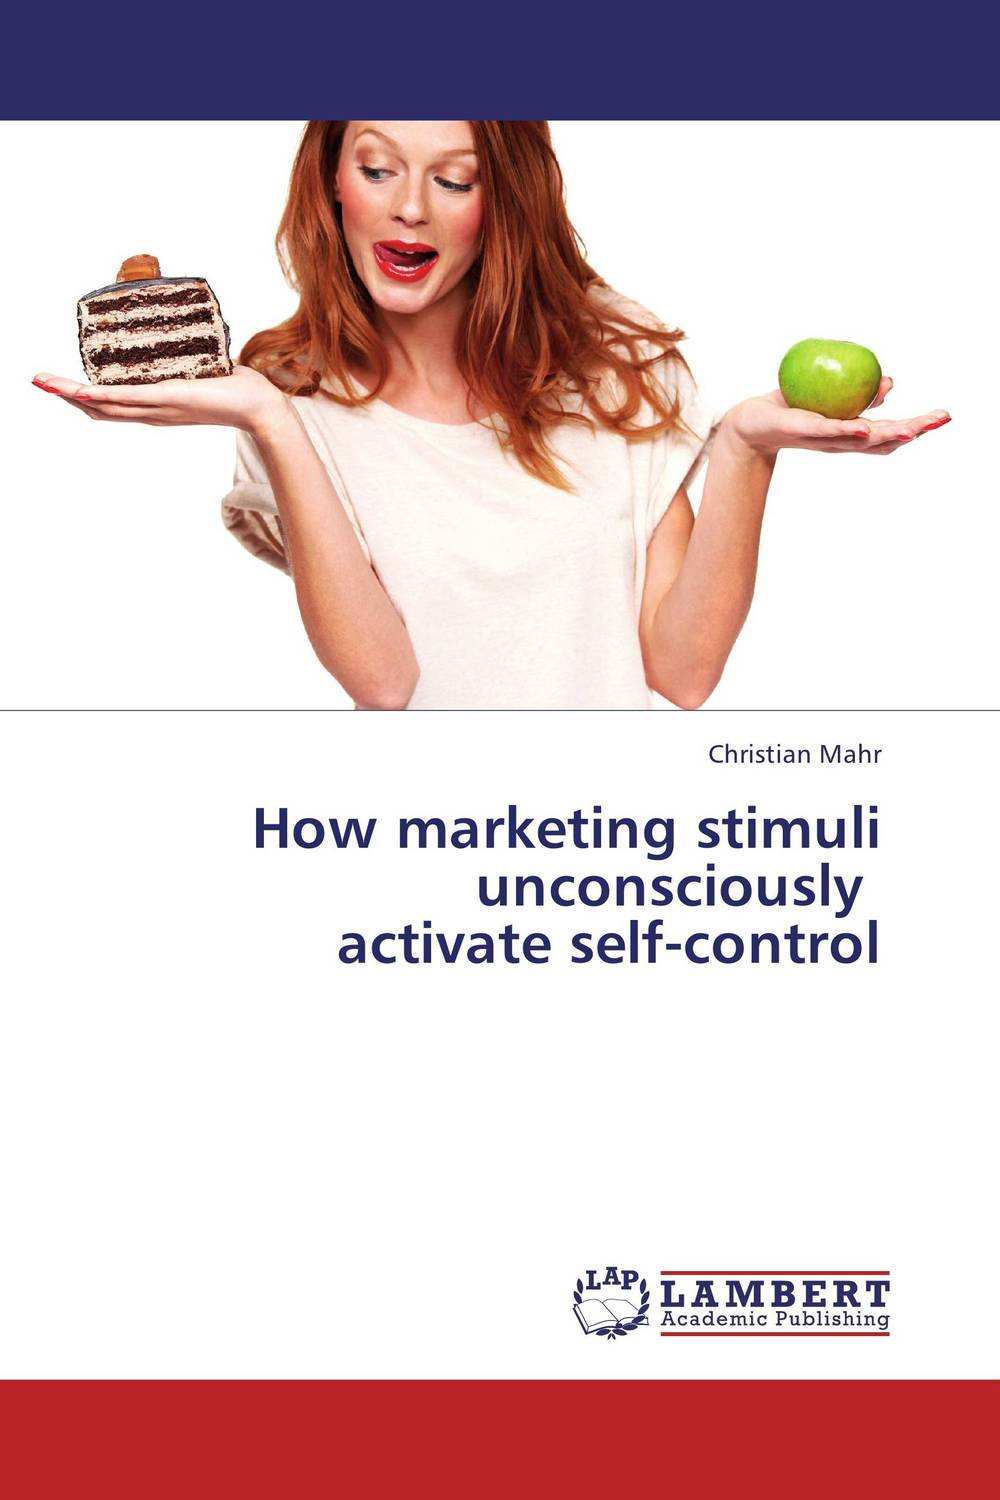 How marketing stimuli unconsciously activate self-control the salmon who dared to leap higher